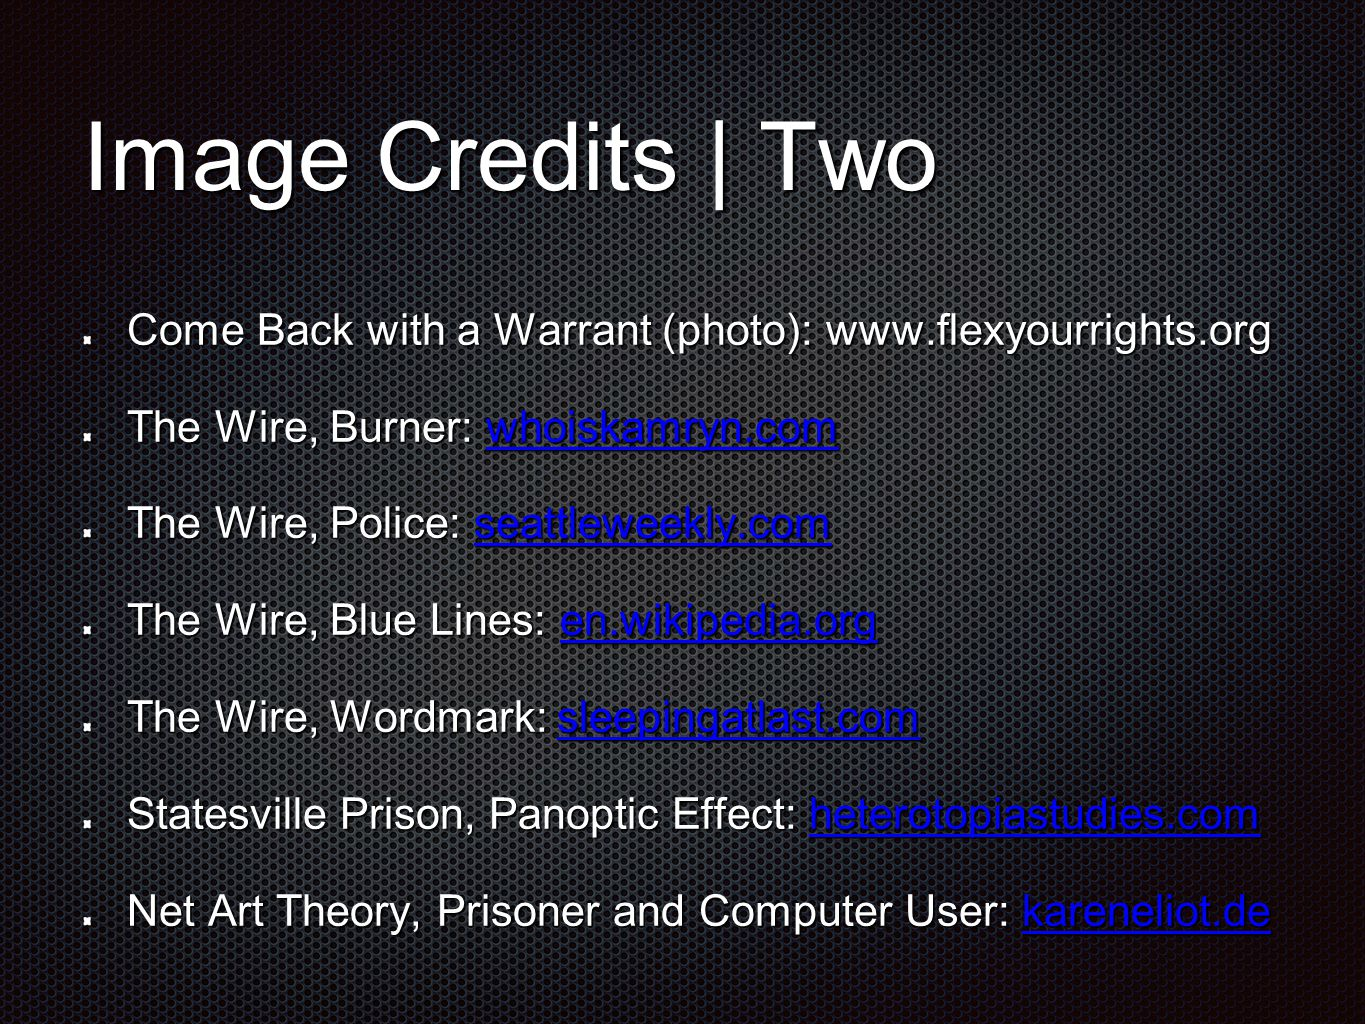 Image Credits | Two Come Back with a Warrant (photo): www.flexyourrights.org The Wire, Burner: whoiskamryn.com whoiskamryn.com The Wire, Police: seattleweekly.com seattleweekly.com The Wire, Blue Lines: en.wikipedia.org en.wikipedia.org The Wire, Wordmark: sleepingatlast.com sleepingatlast.com Statesville Prison, Panoptic Effect: heterotopiastudies.com heterotopiastudies.com Net Art Theory, Prisoner and Computer User: kareneliot.de kareneliot.de